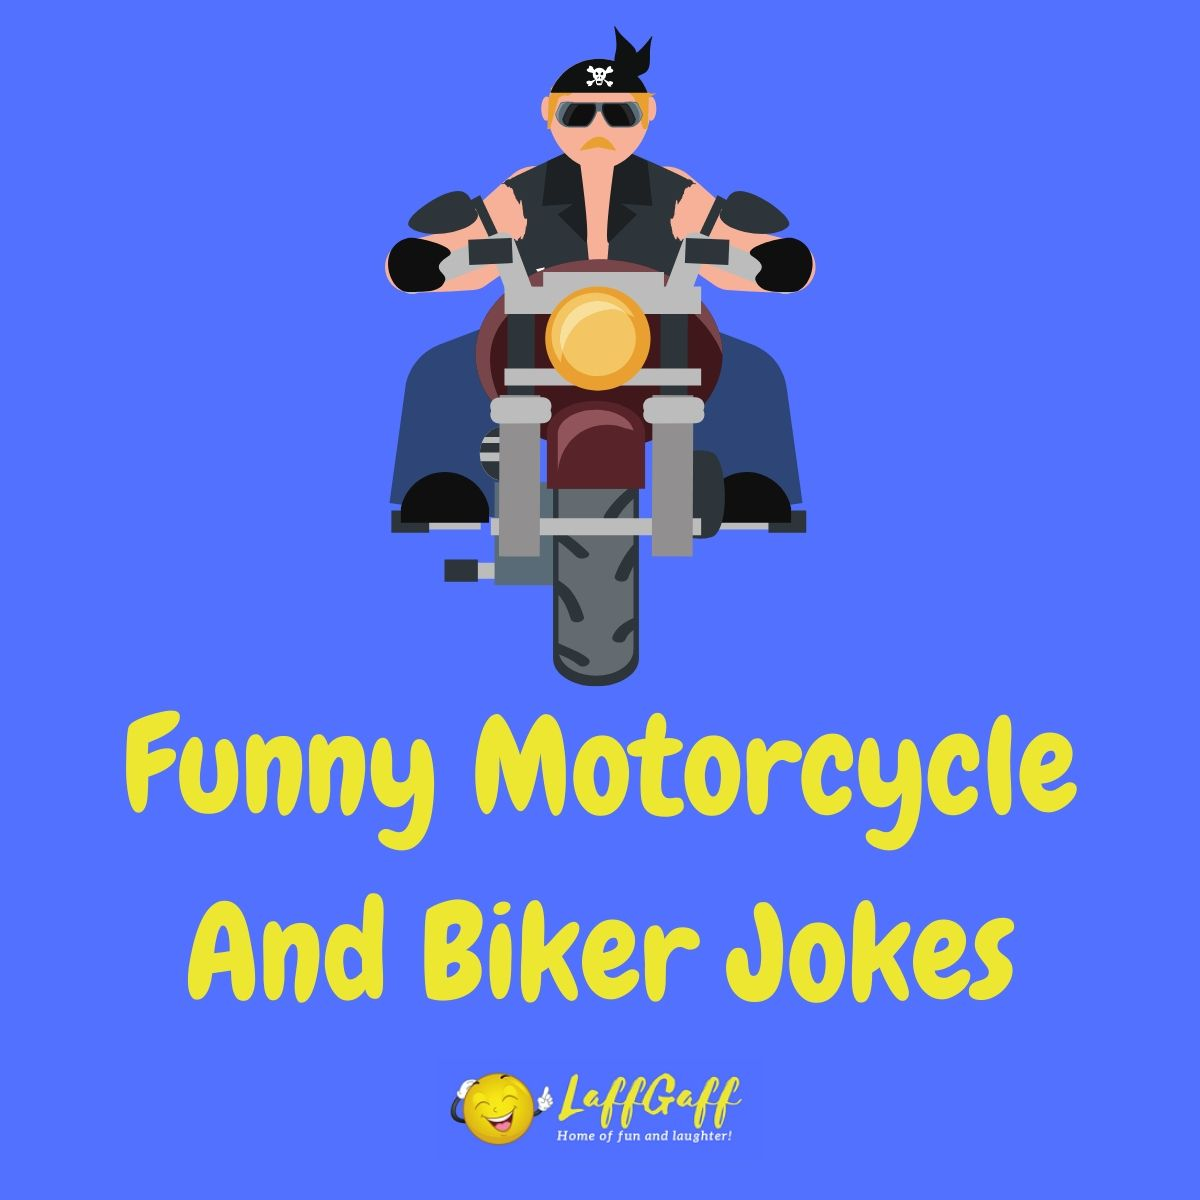 Featured image for a page of funny motorcycle jokes and biker jokes.